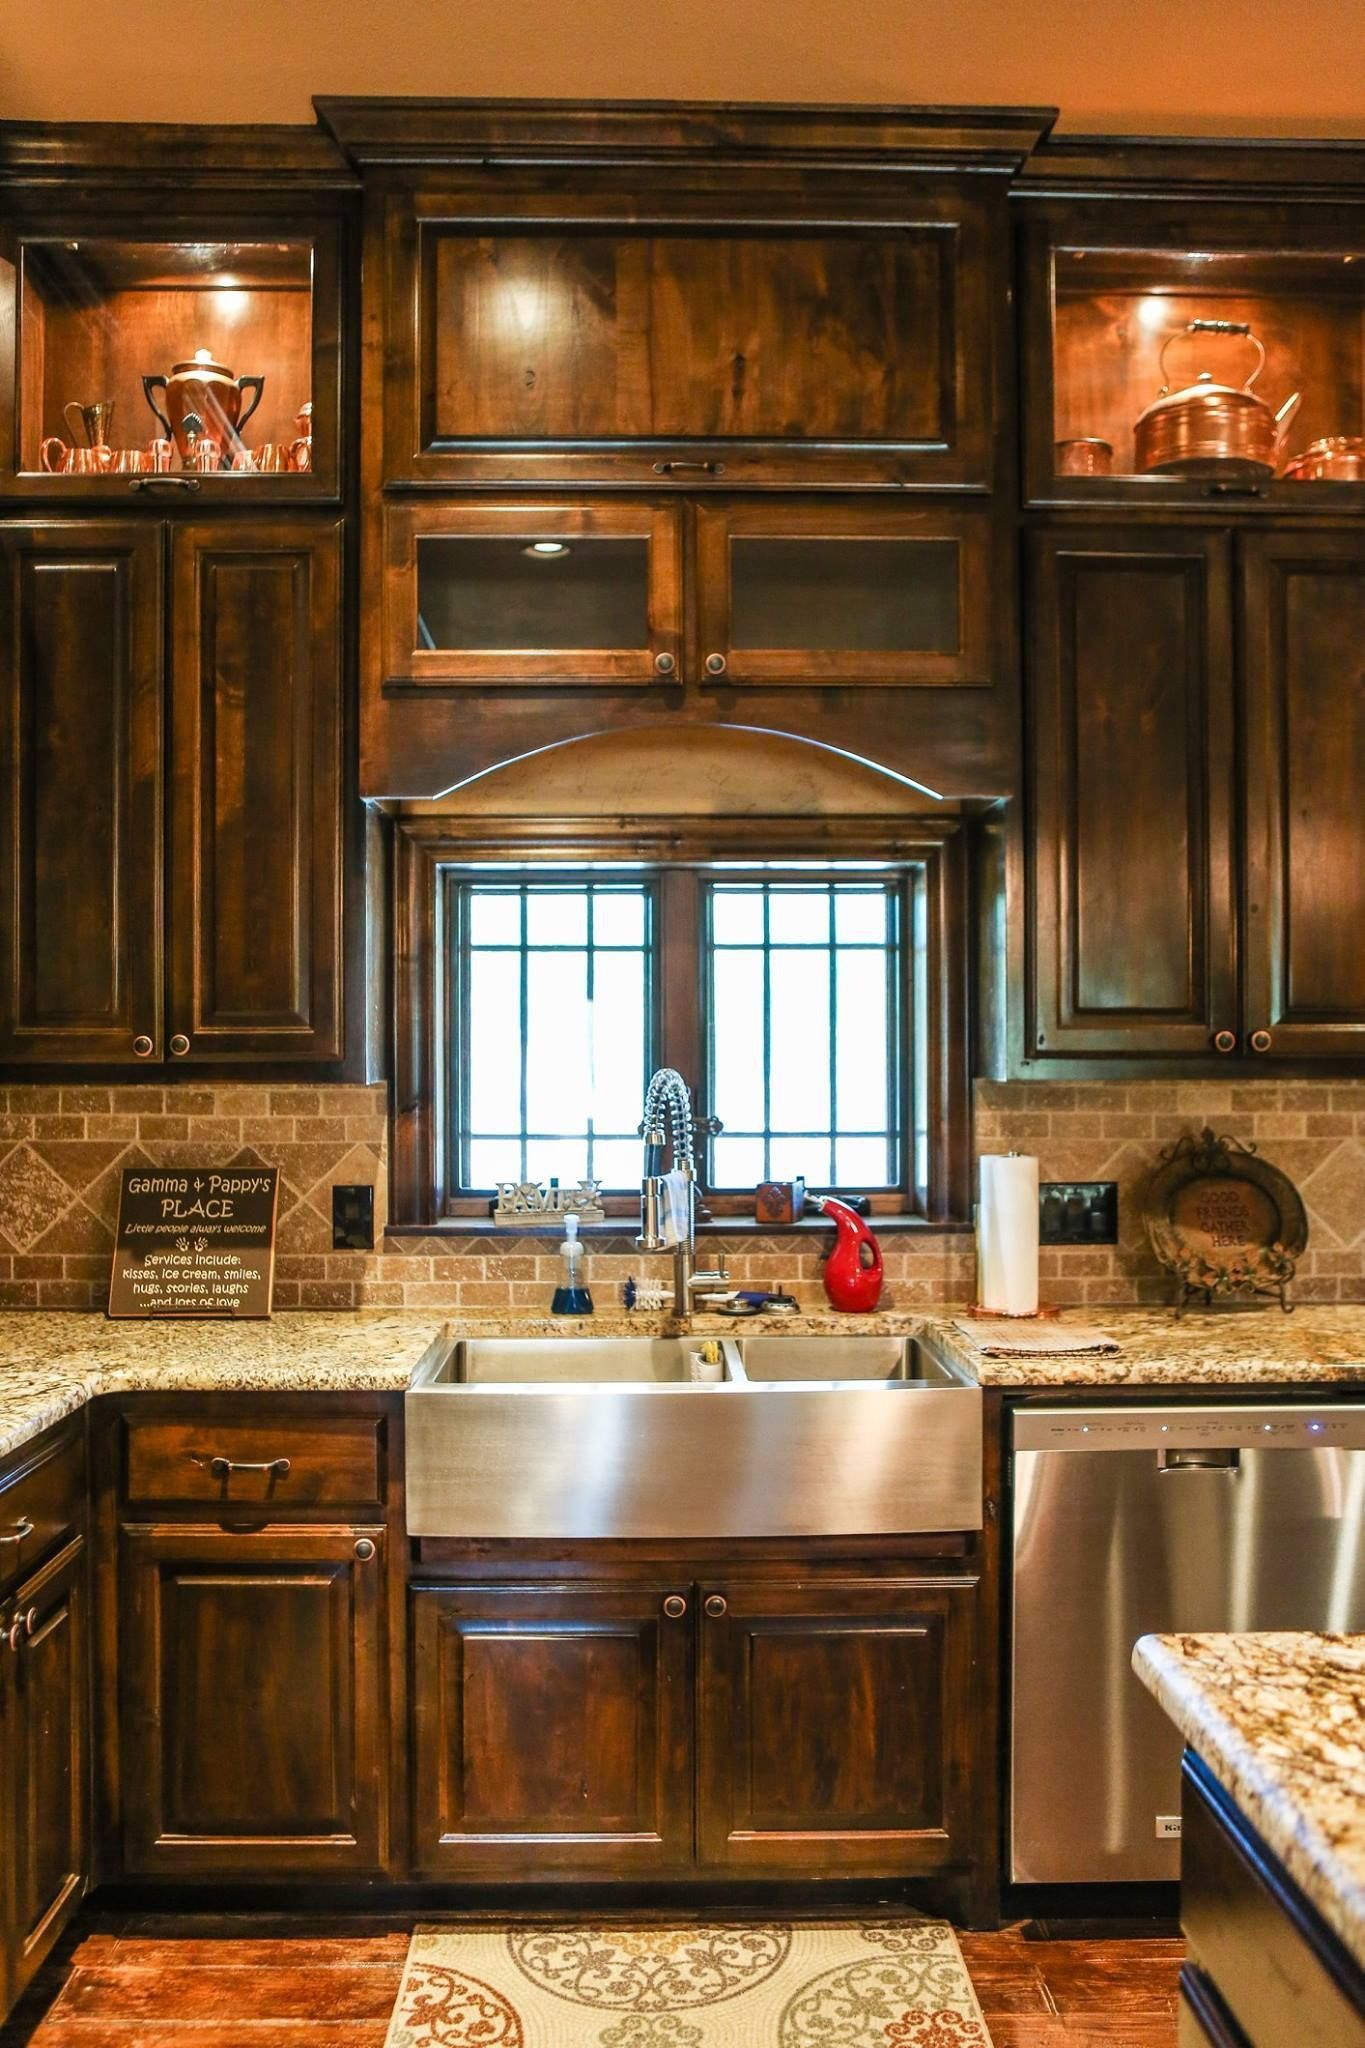 Rustic Kitchen Cabinet Designs 2021 In 2020 Tuscan Kitchen Design Rustic Kitchen Cabinets Rustic Kitchen